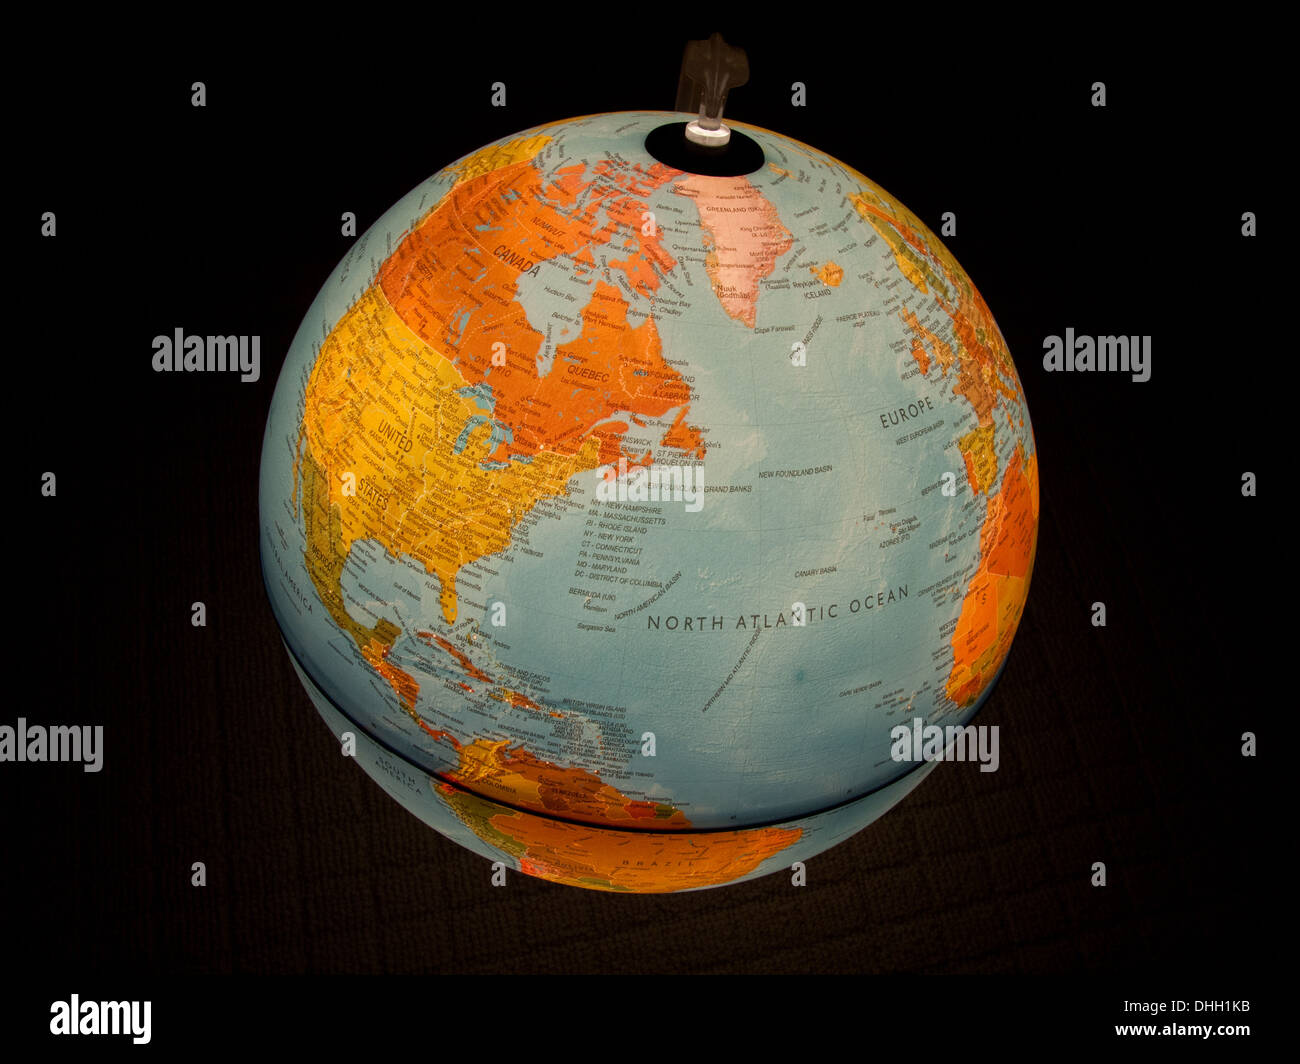 Planet Earth as depicted on a lighted globe. - Stock Image